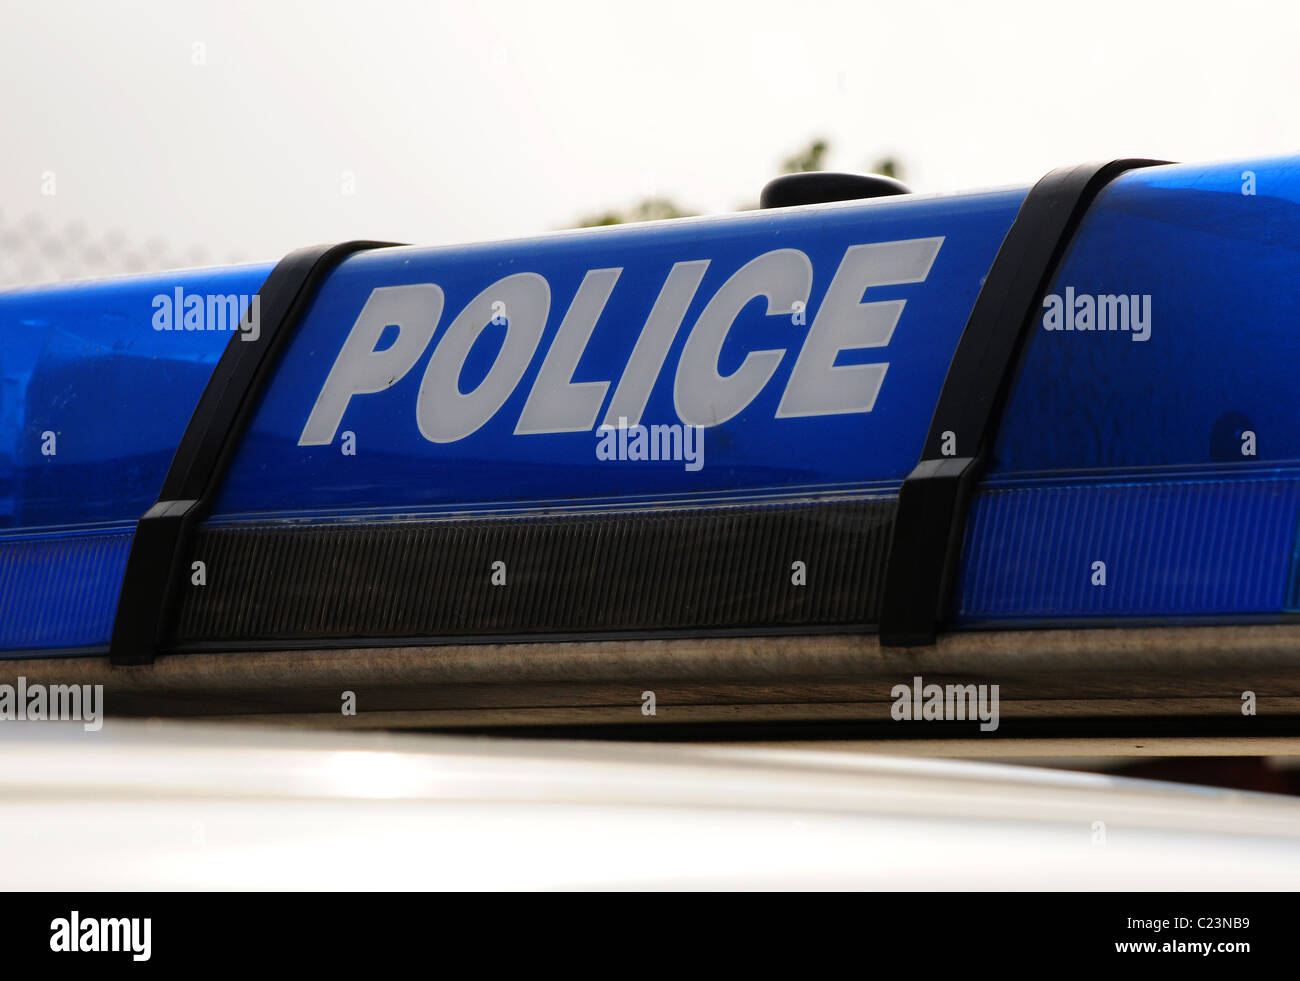 Police vehicle light array showing police in white on blue light. - Stock Image